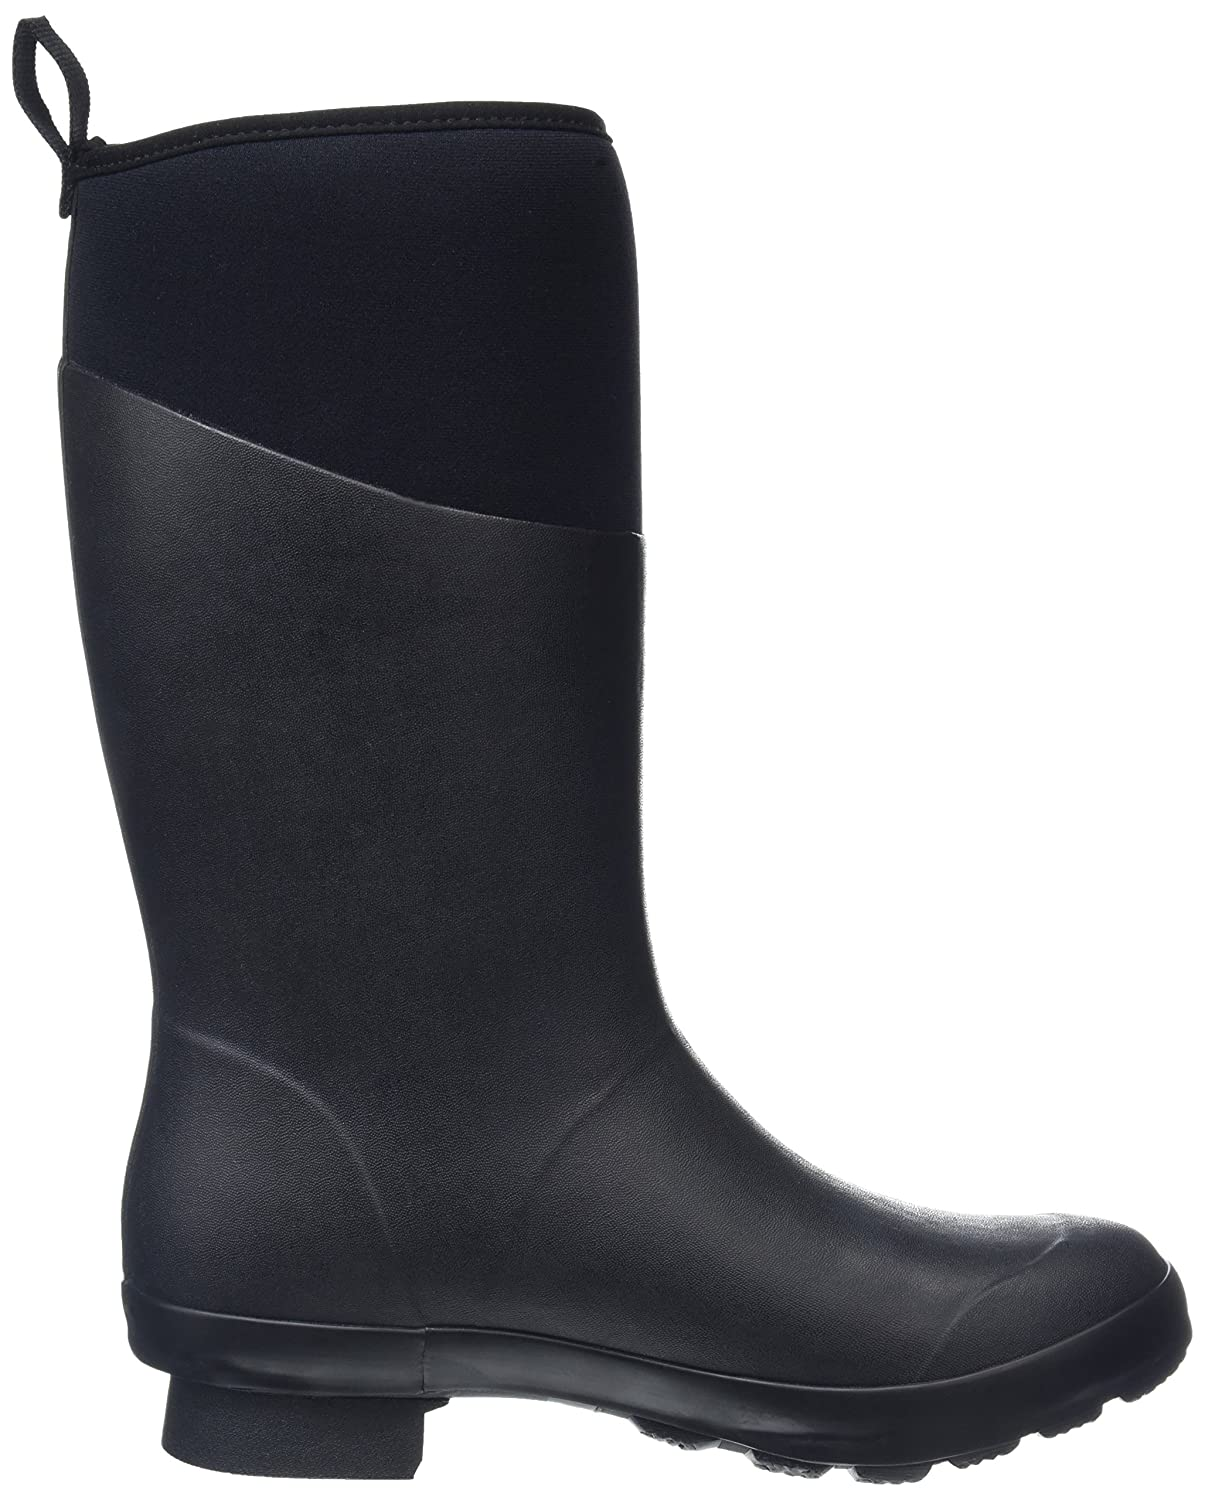 Muck Boot Women's Tremont Wellie B(M) Mid Snow B01J6MBN0S 10 B(M) Wellie US|Black 96d0dc